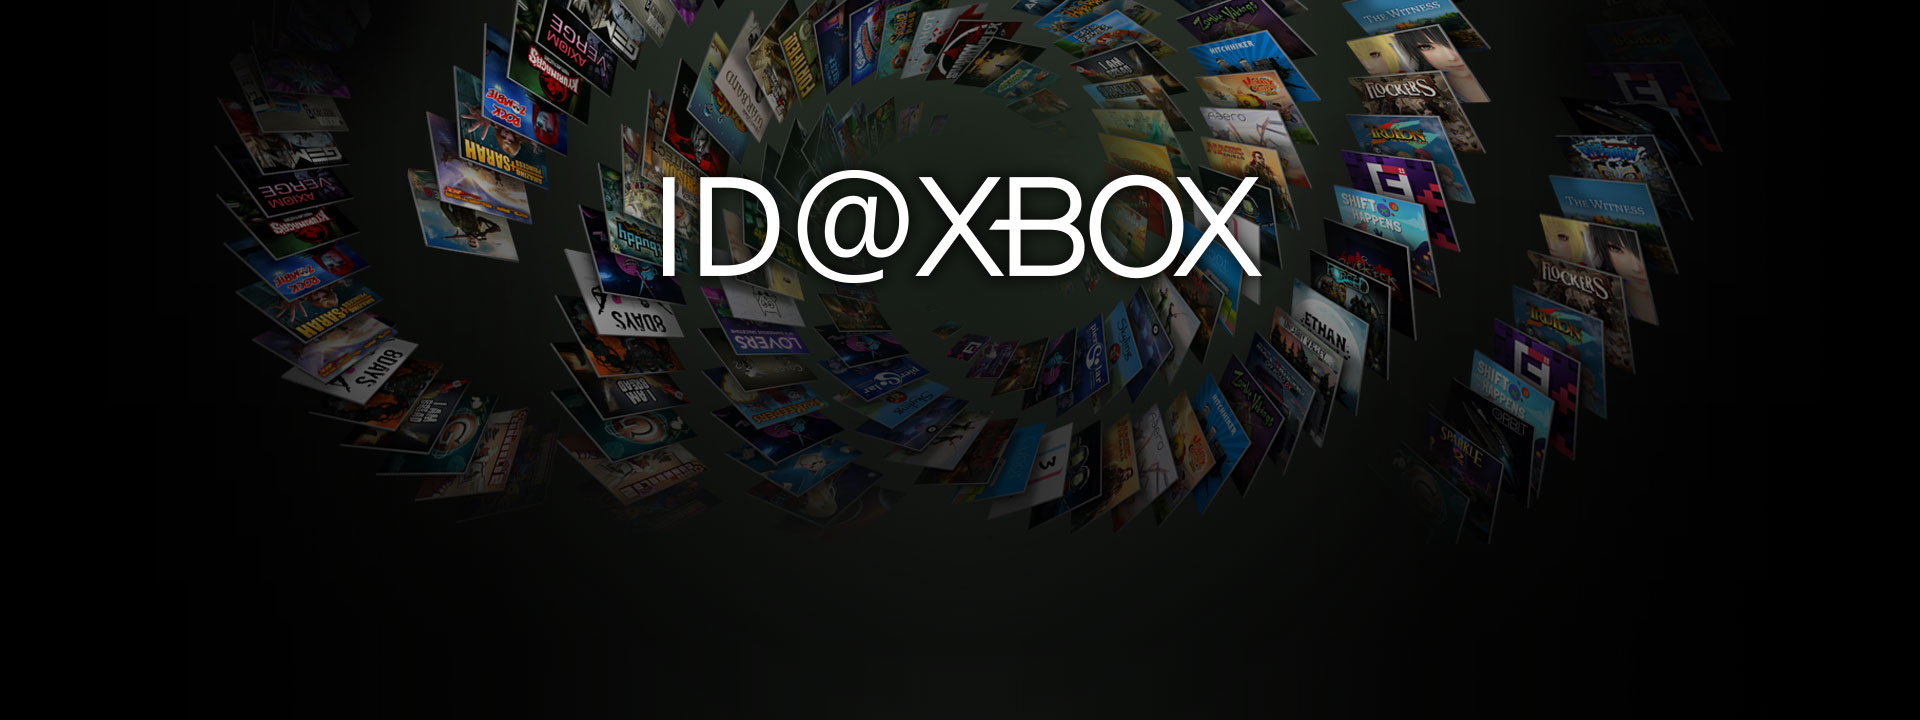 ID at Xbox logo in front of a collection of box shots from ID games